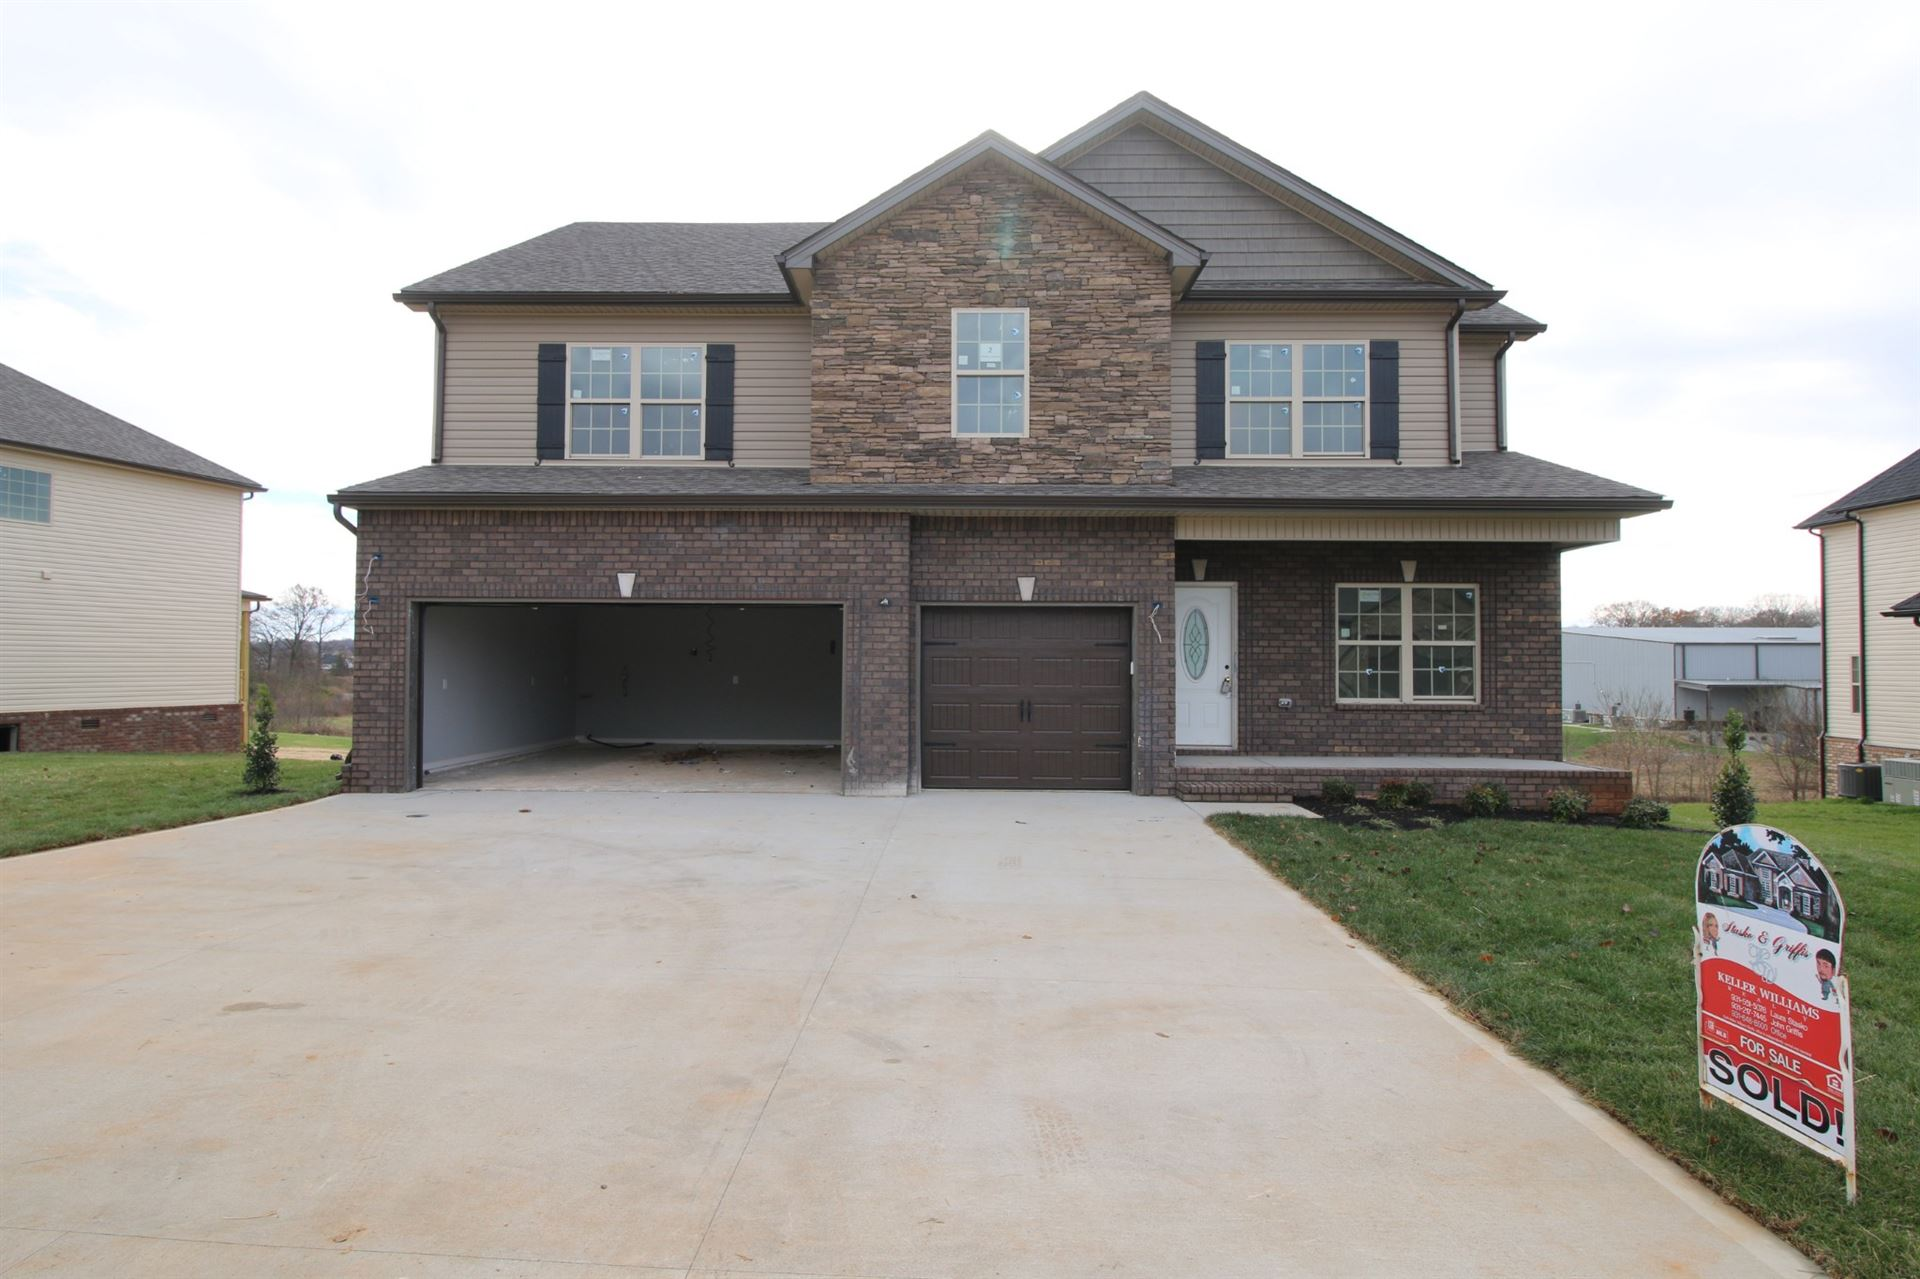 2 Reserve at Hickory Wild, Clarksville, TN 37043 - MLS#: 2181476